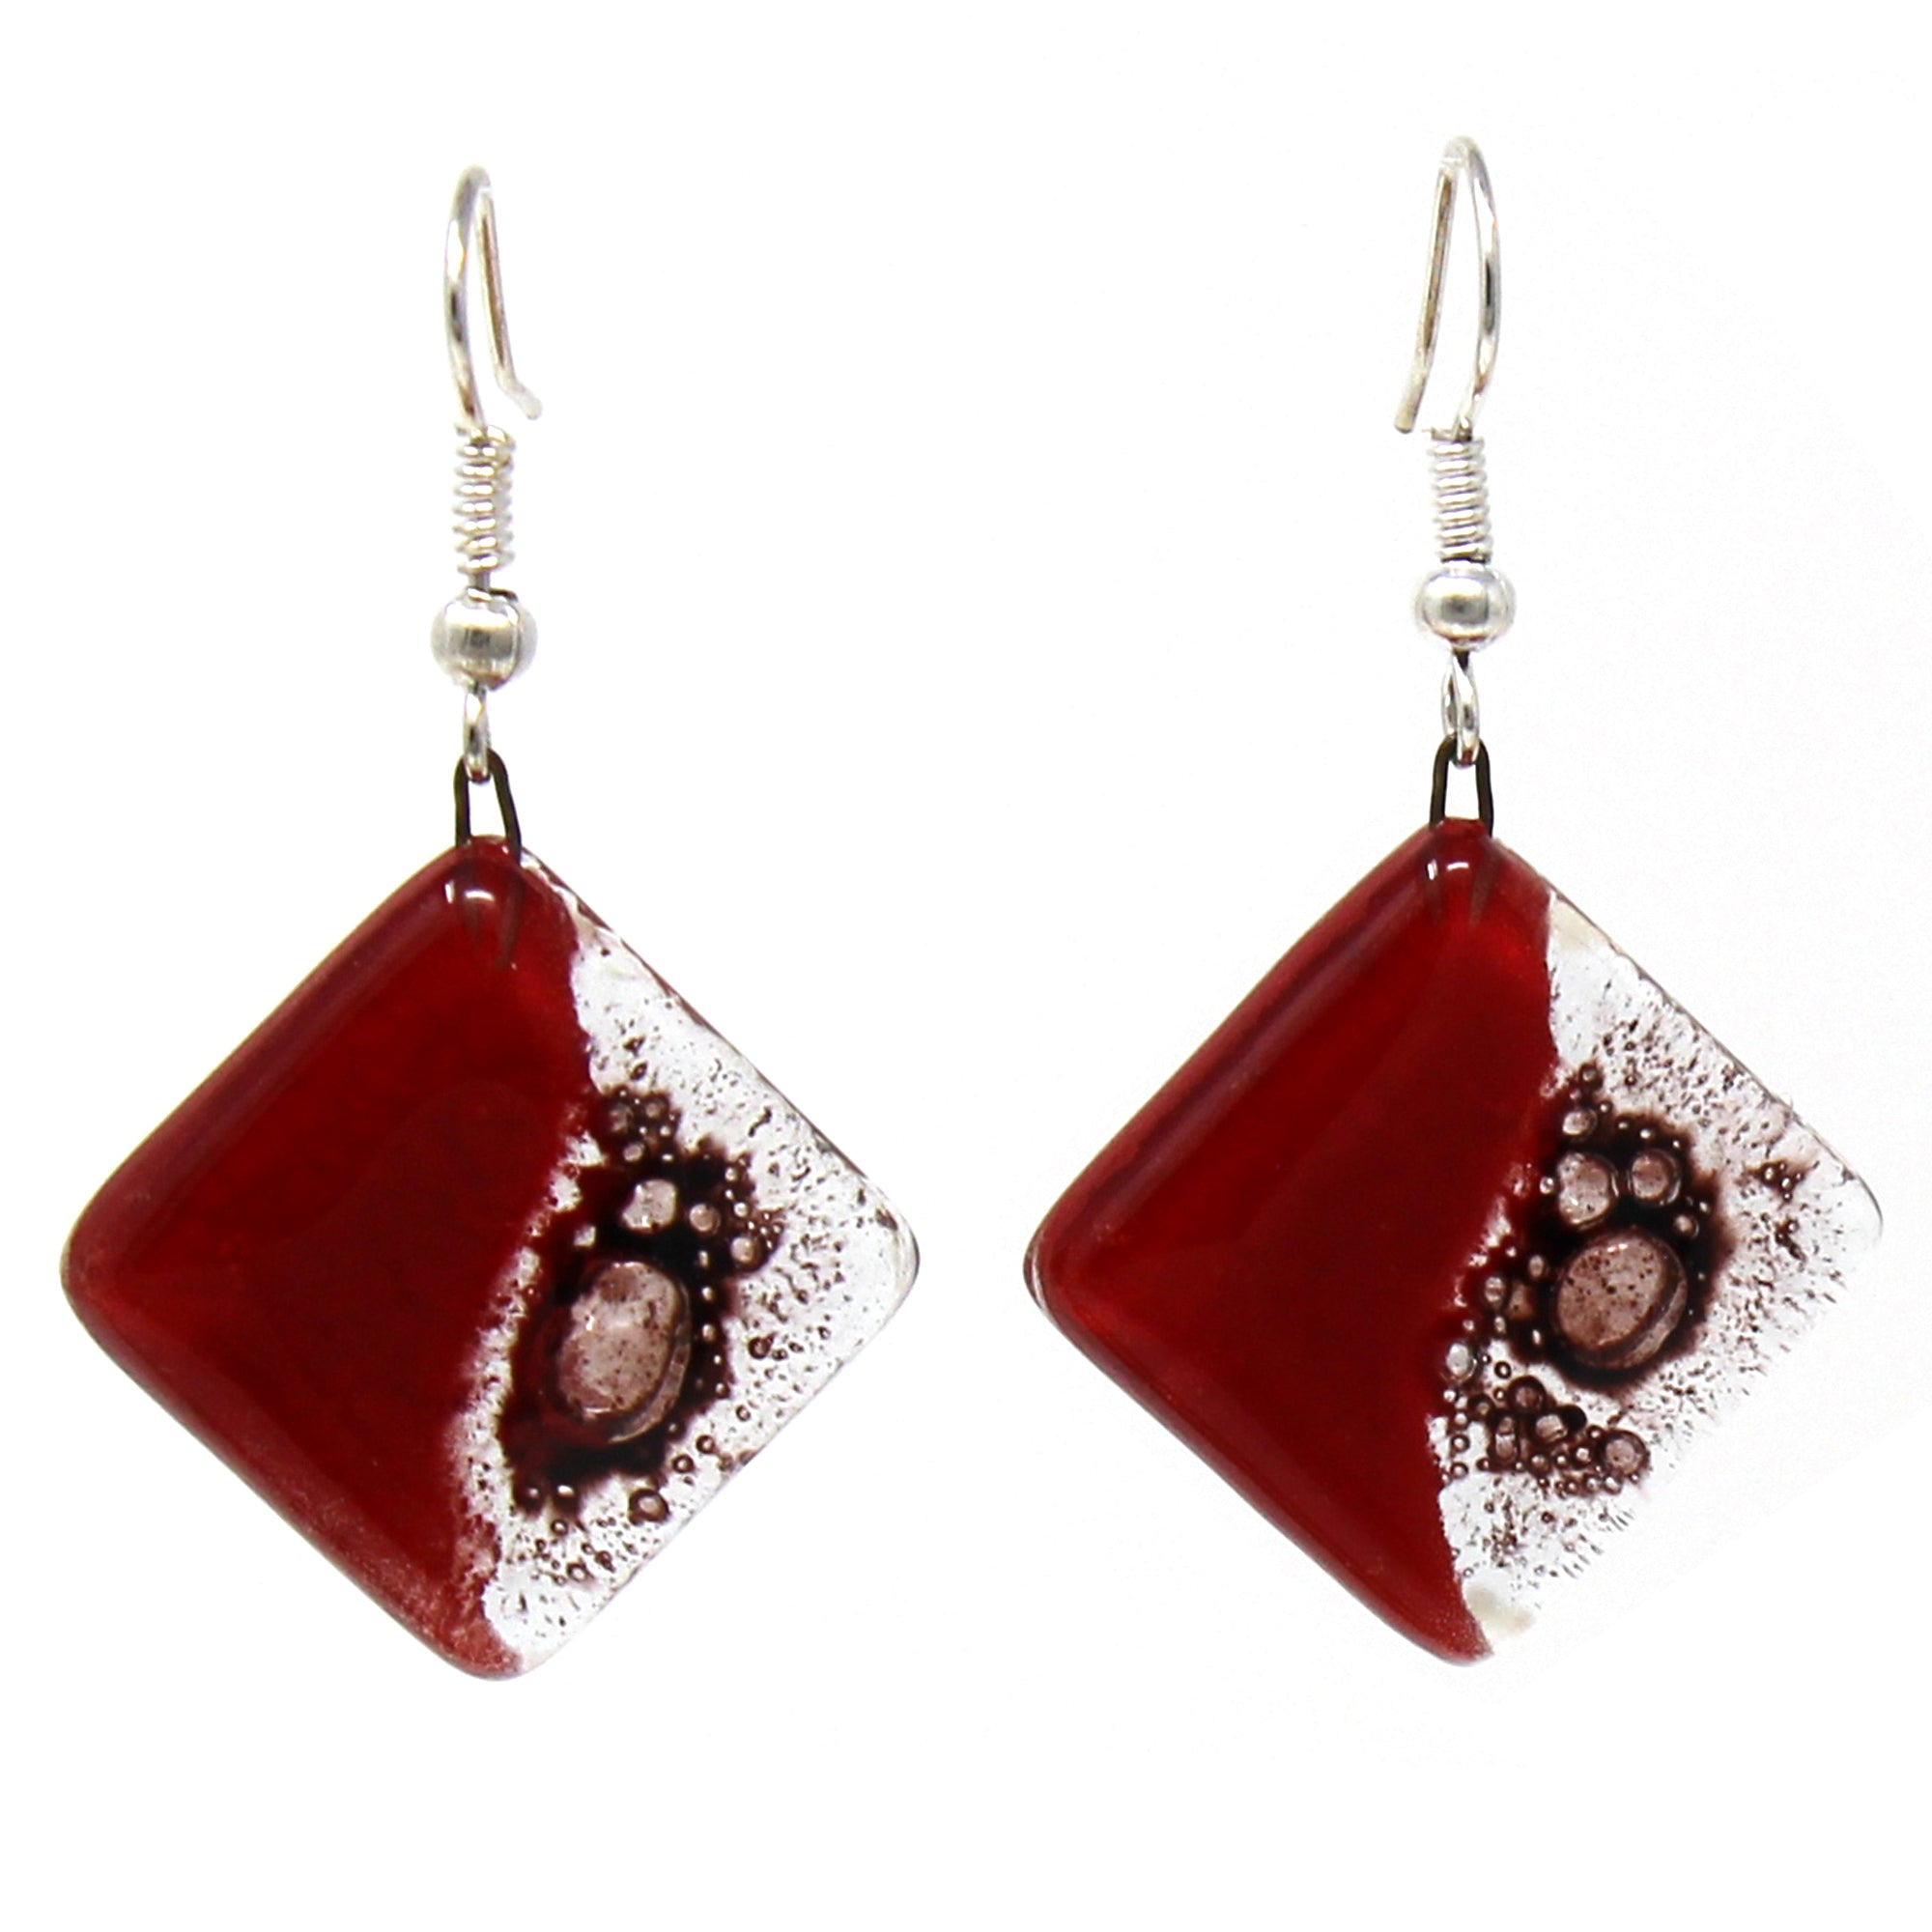 Rhombus Glass Earrings - Posh Plum